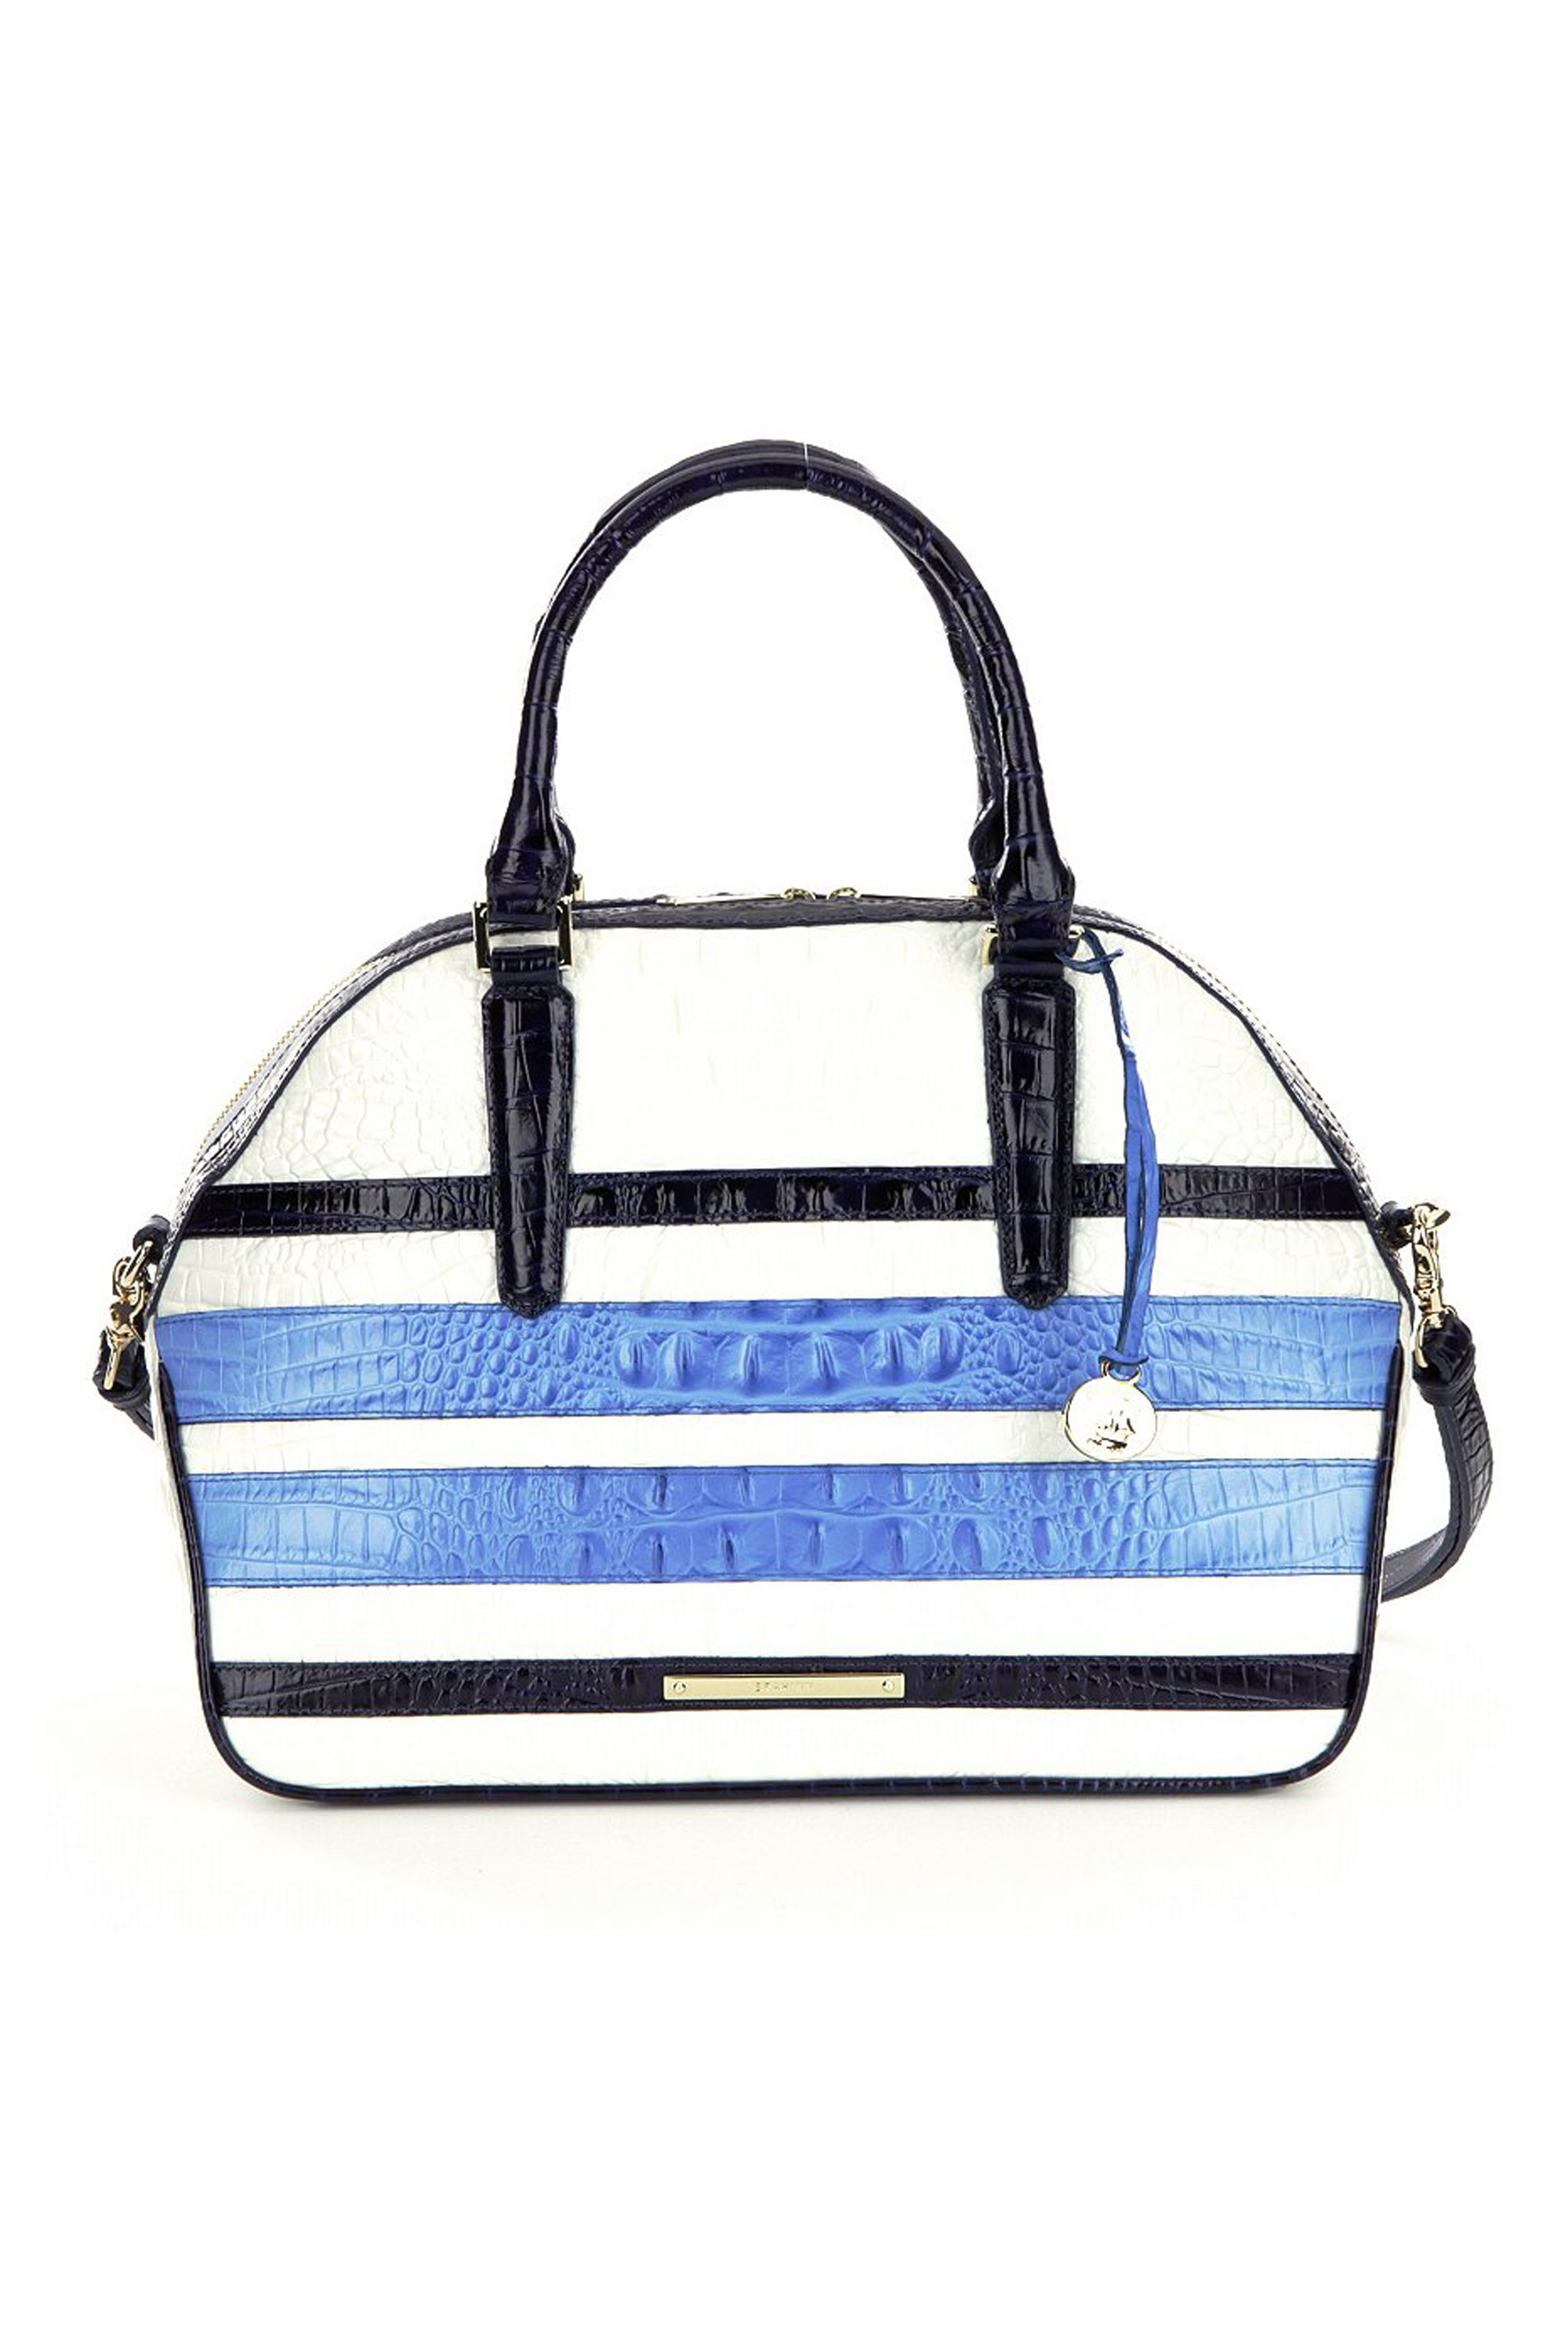 22 Best New Bags For Spring 2016 Handbags Emma Tote Blue Print